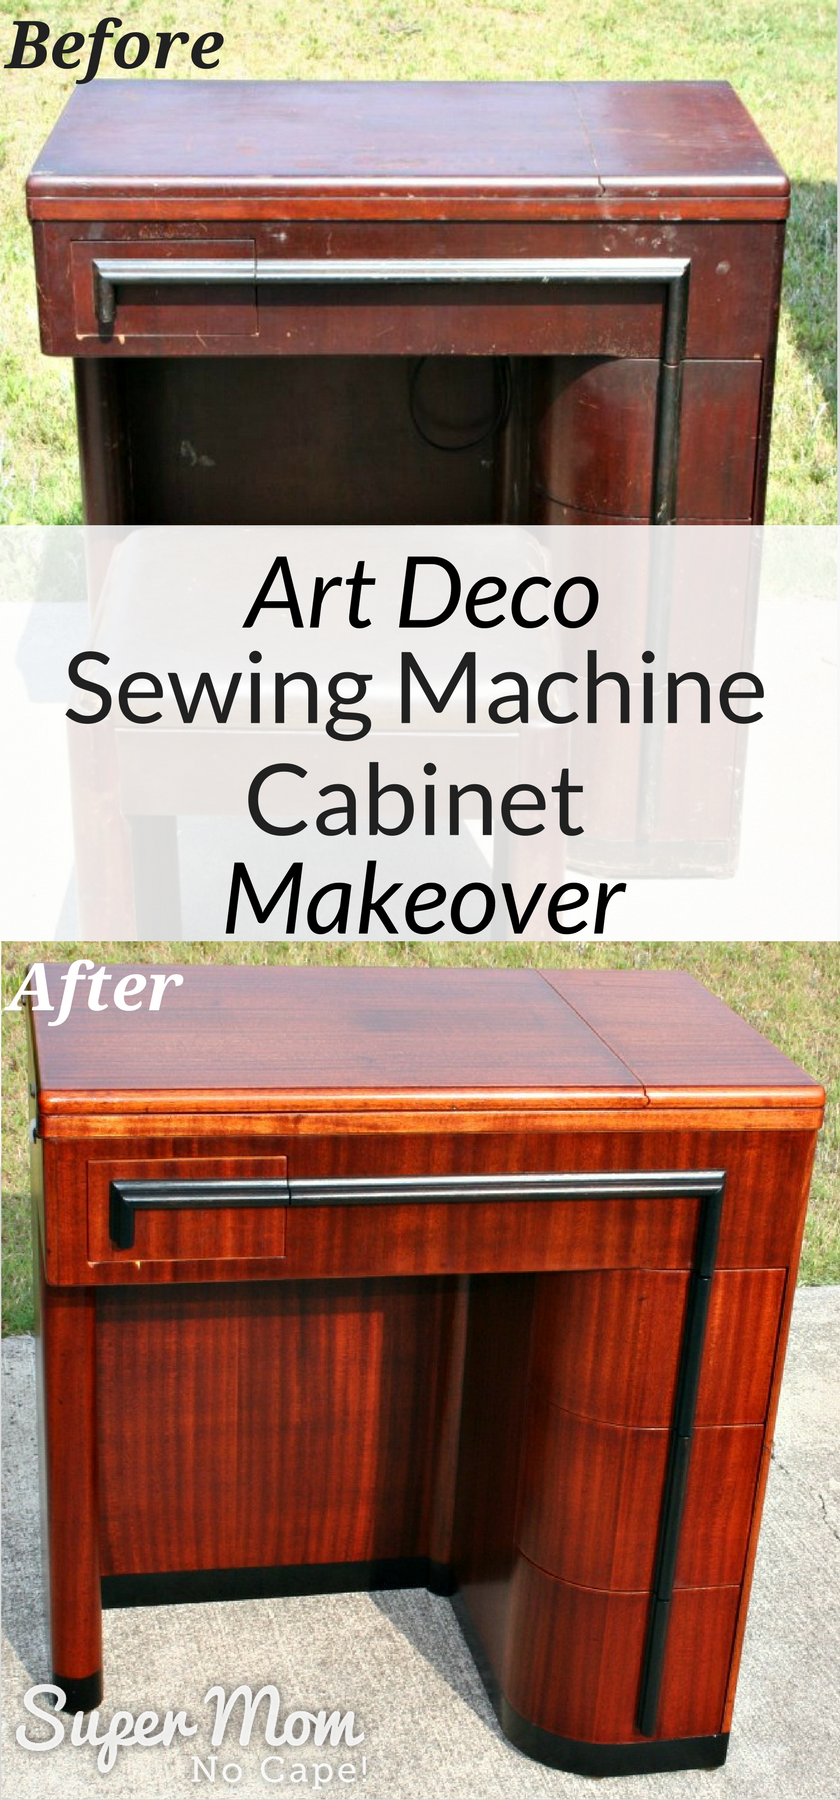 Before and After photos of the Art Deco Sewing Machine Cabinet